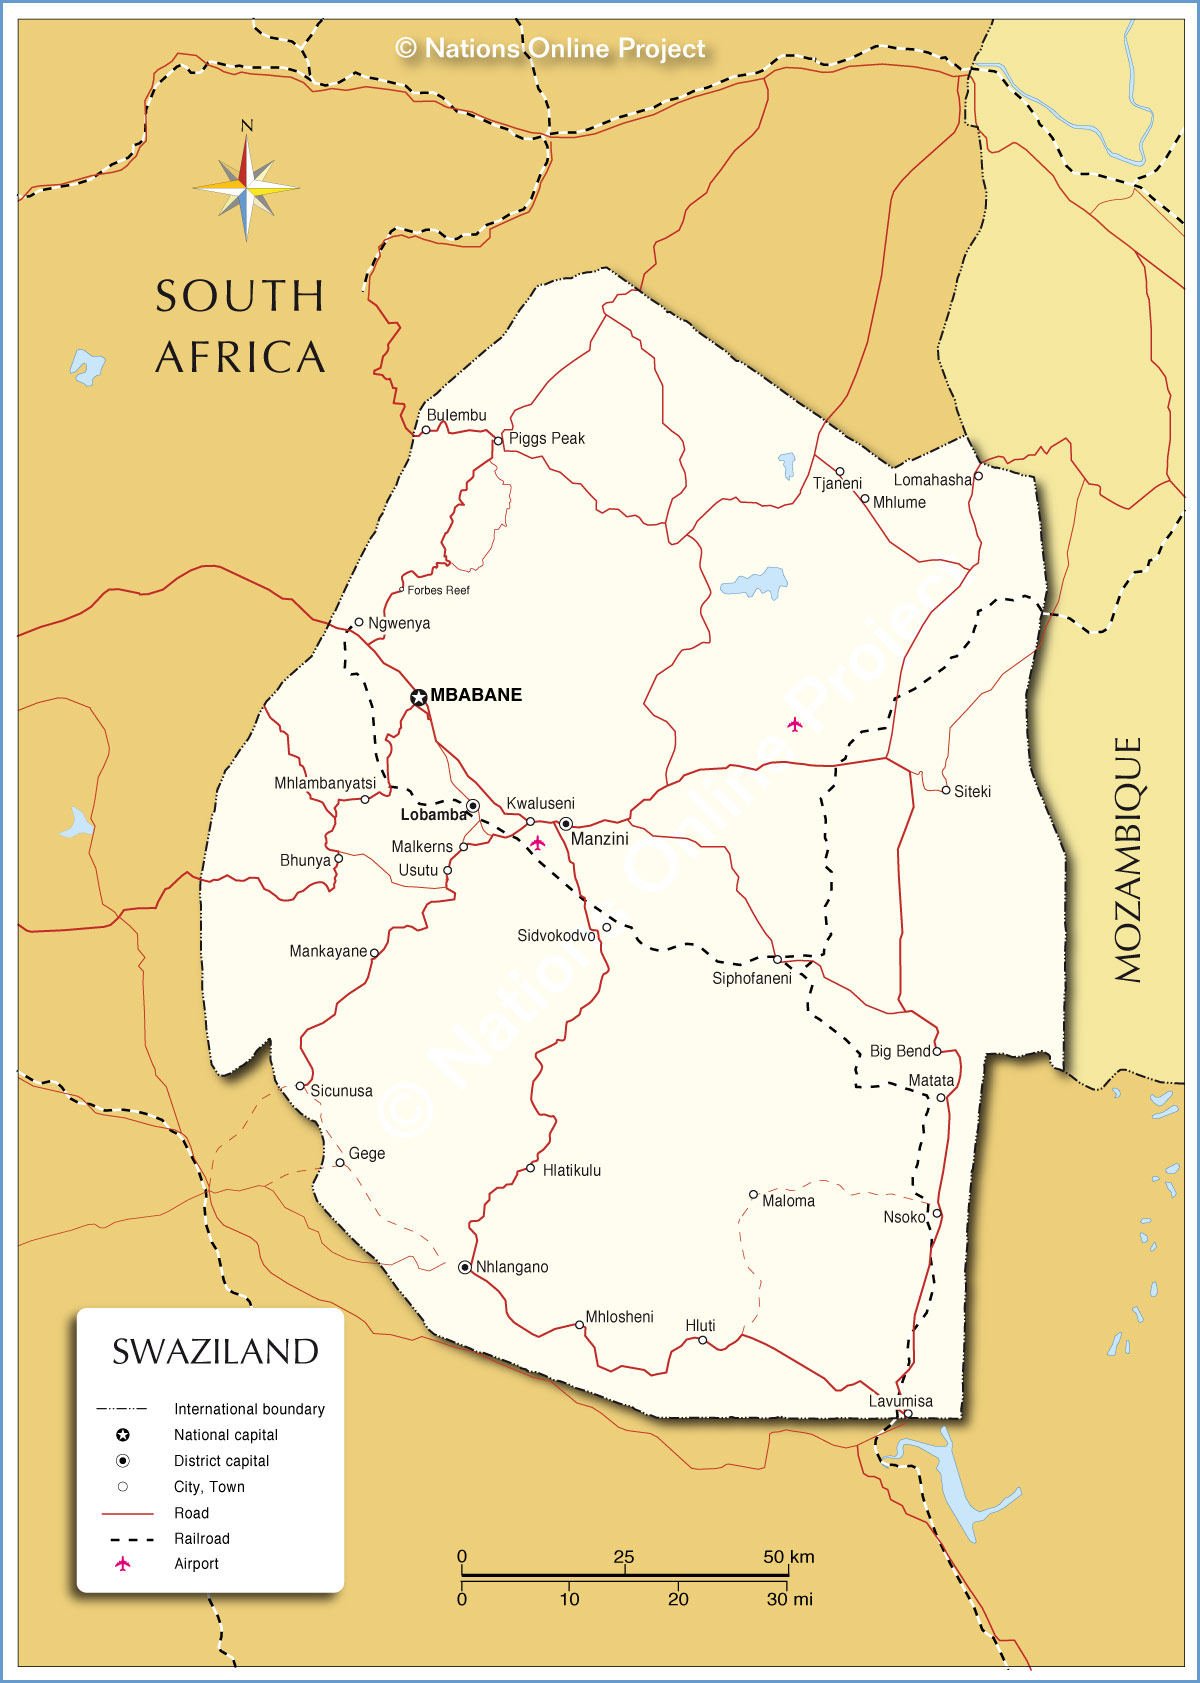 Map Of Swaziland Political Map of Swaziland   Nations Online Project